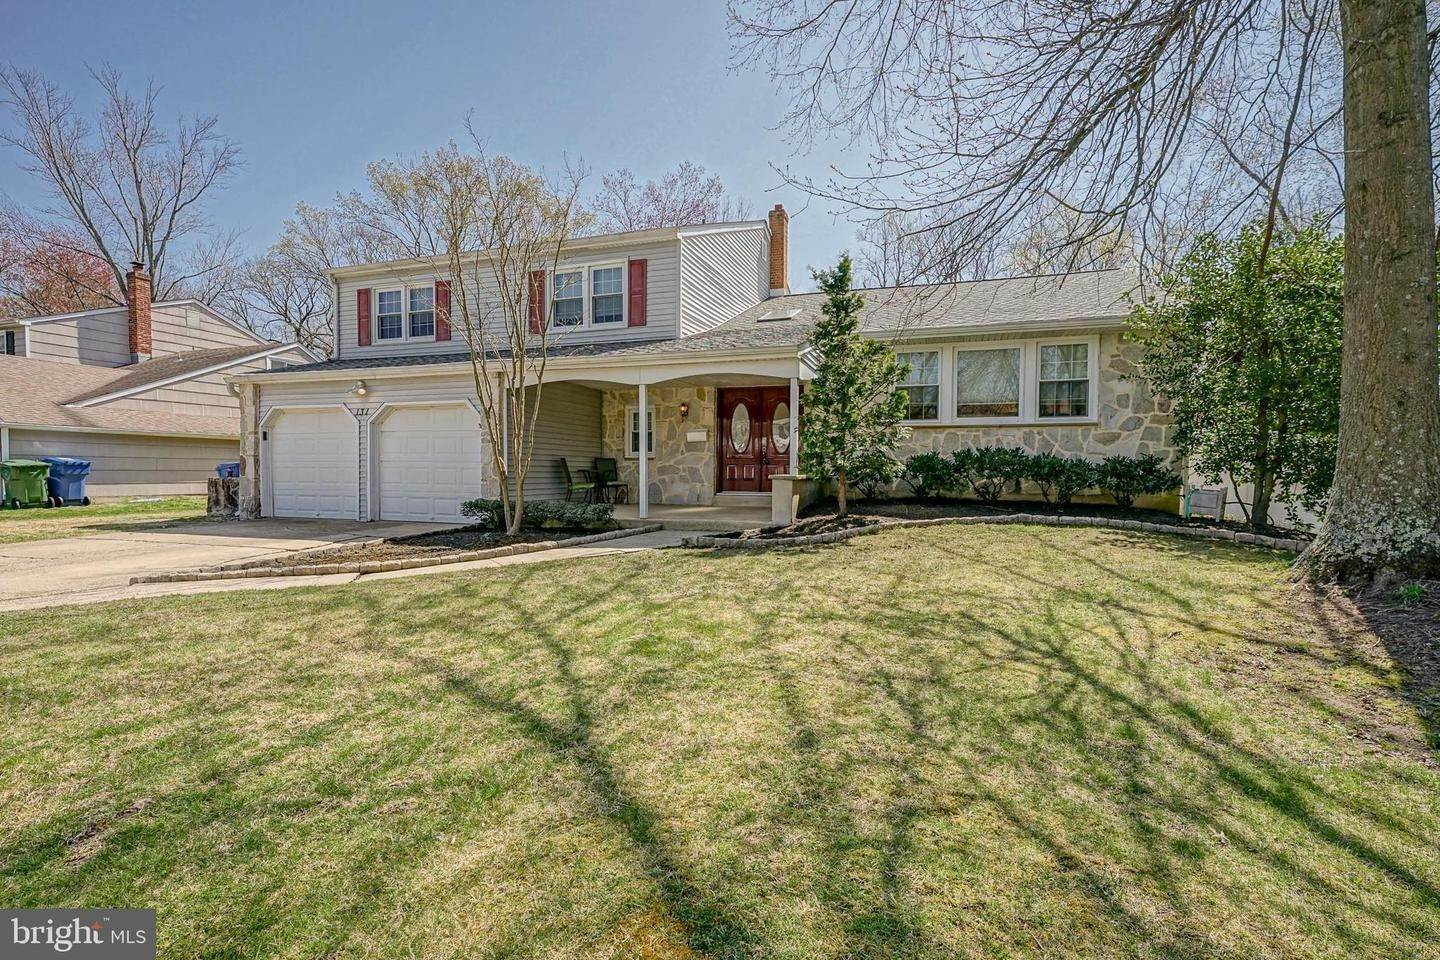 Detached House for Sale at 131 HENFIELD Avenue Cherry Hill, New Jersey 08003 United States